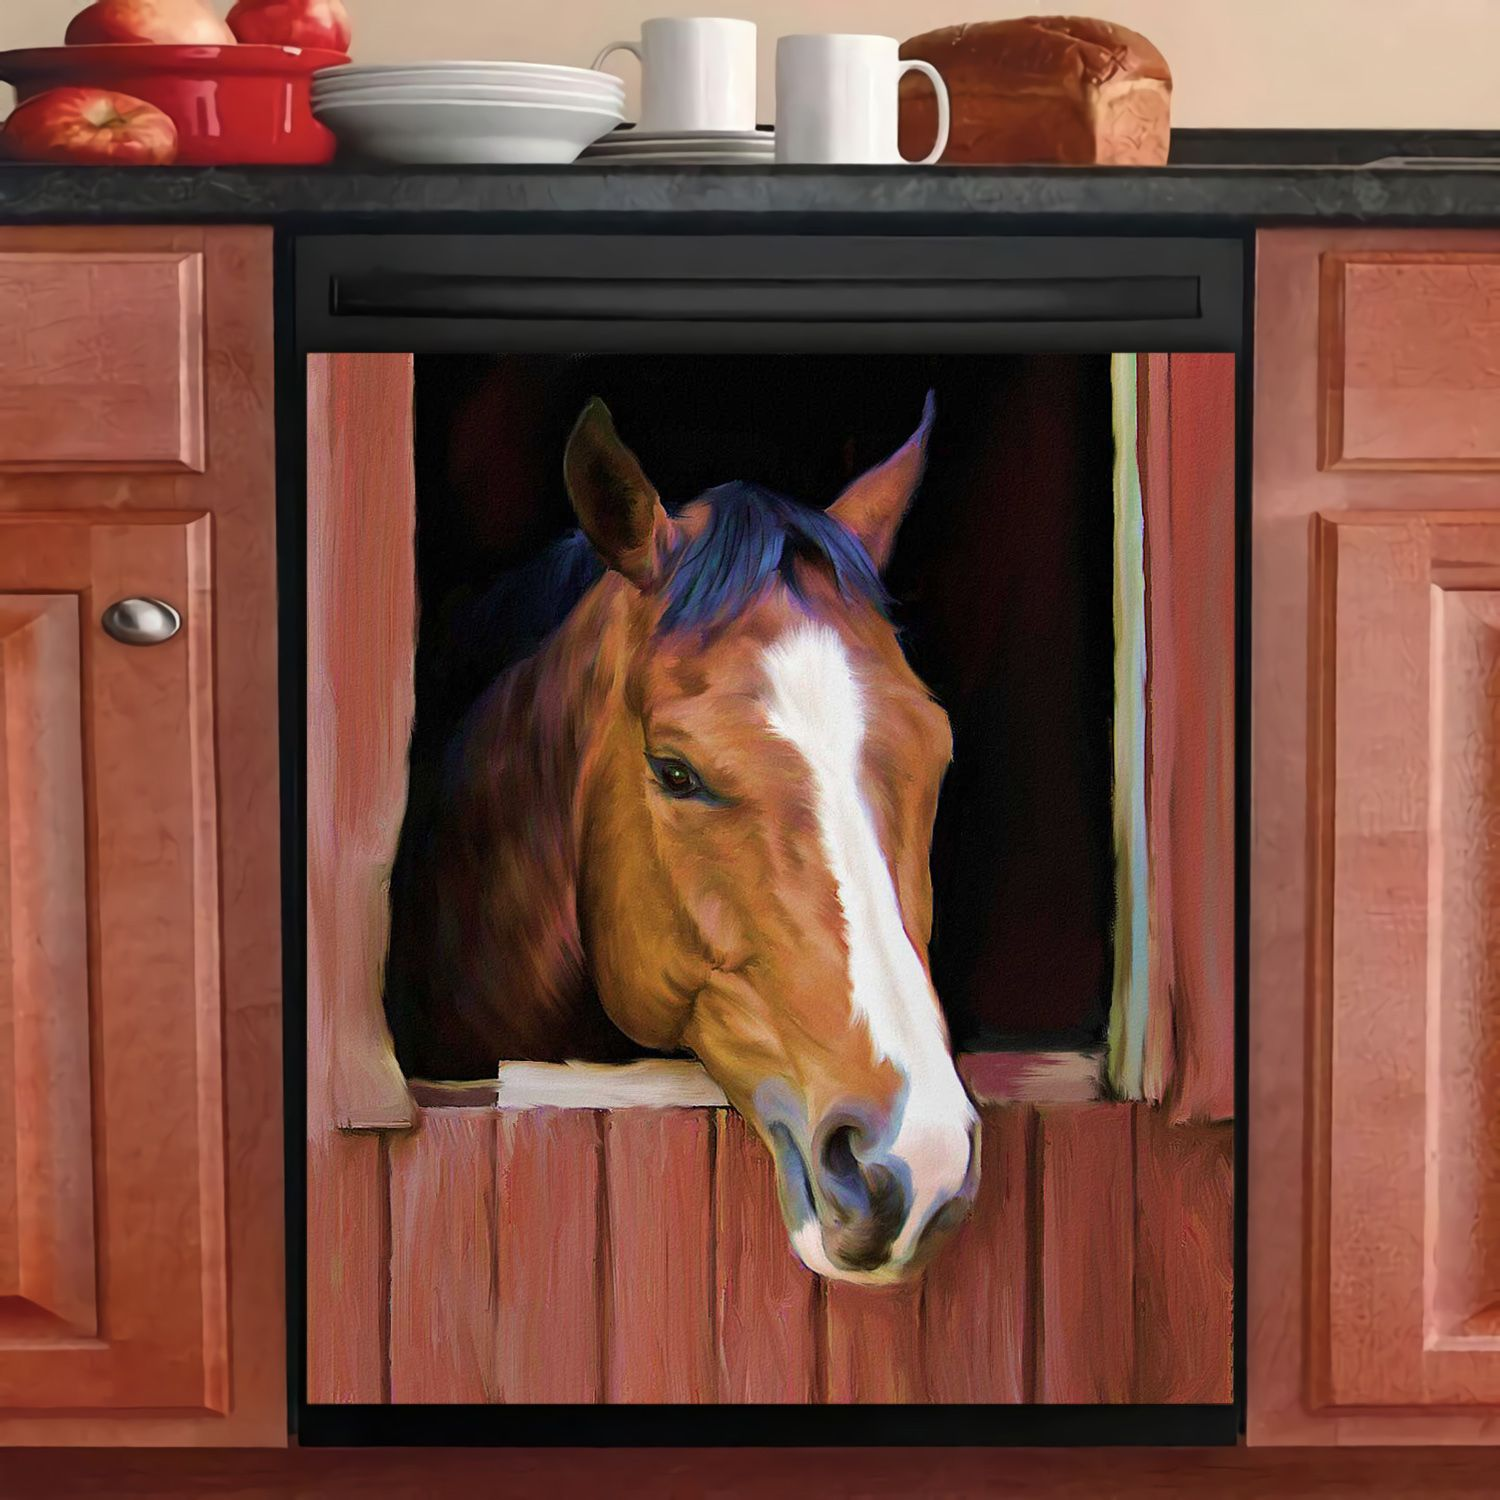 HORSE FARM DECOR KITCHEN DISHWASHER COVER